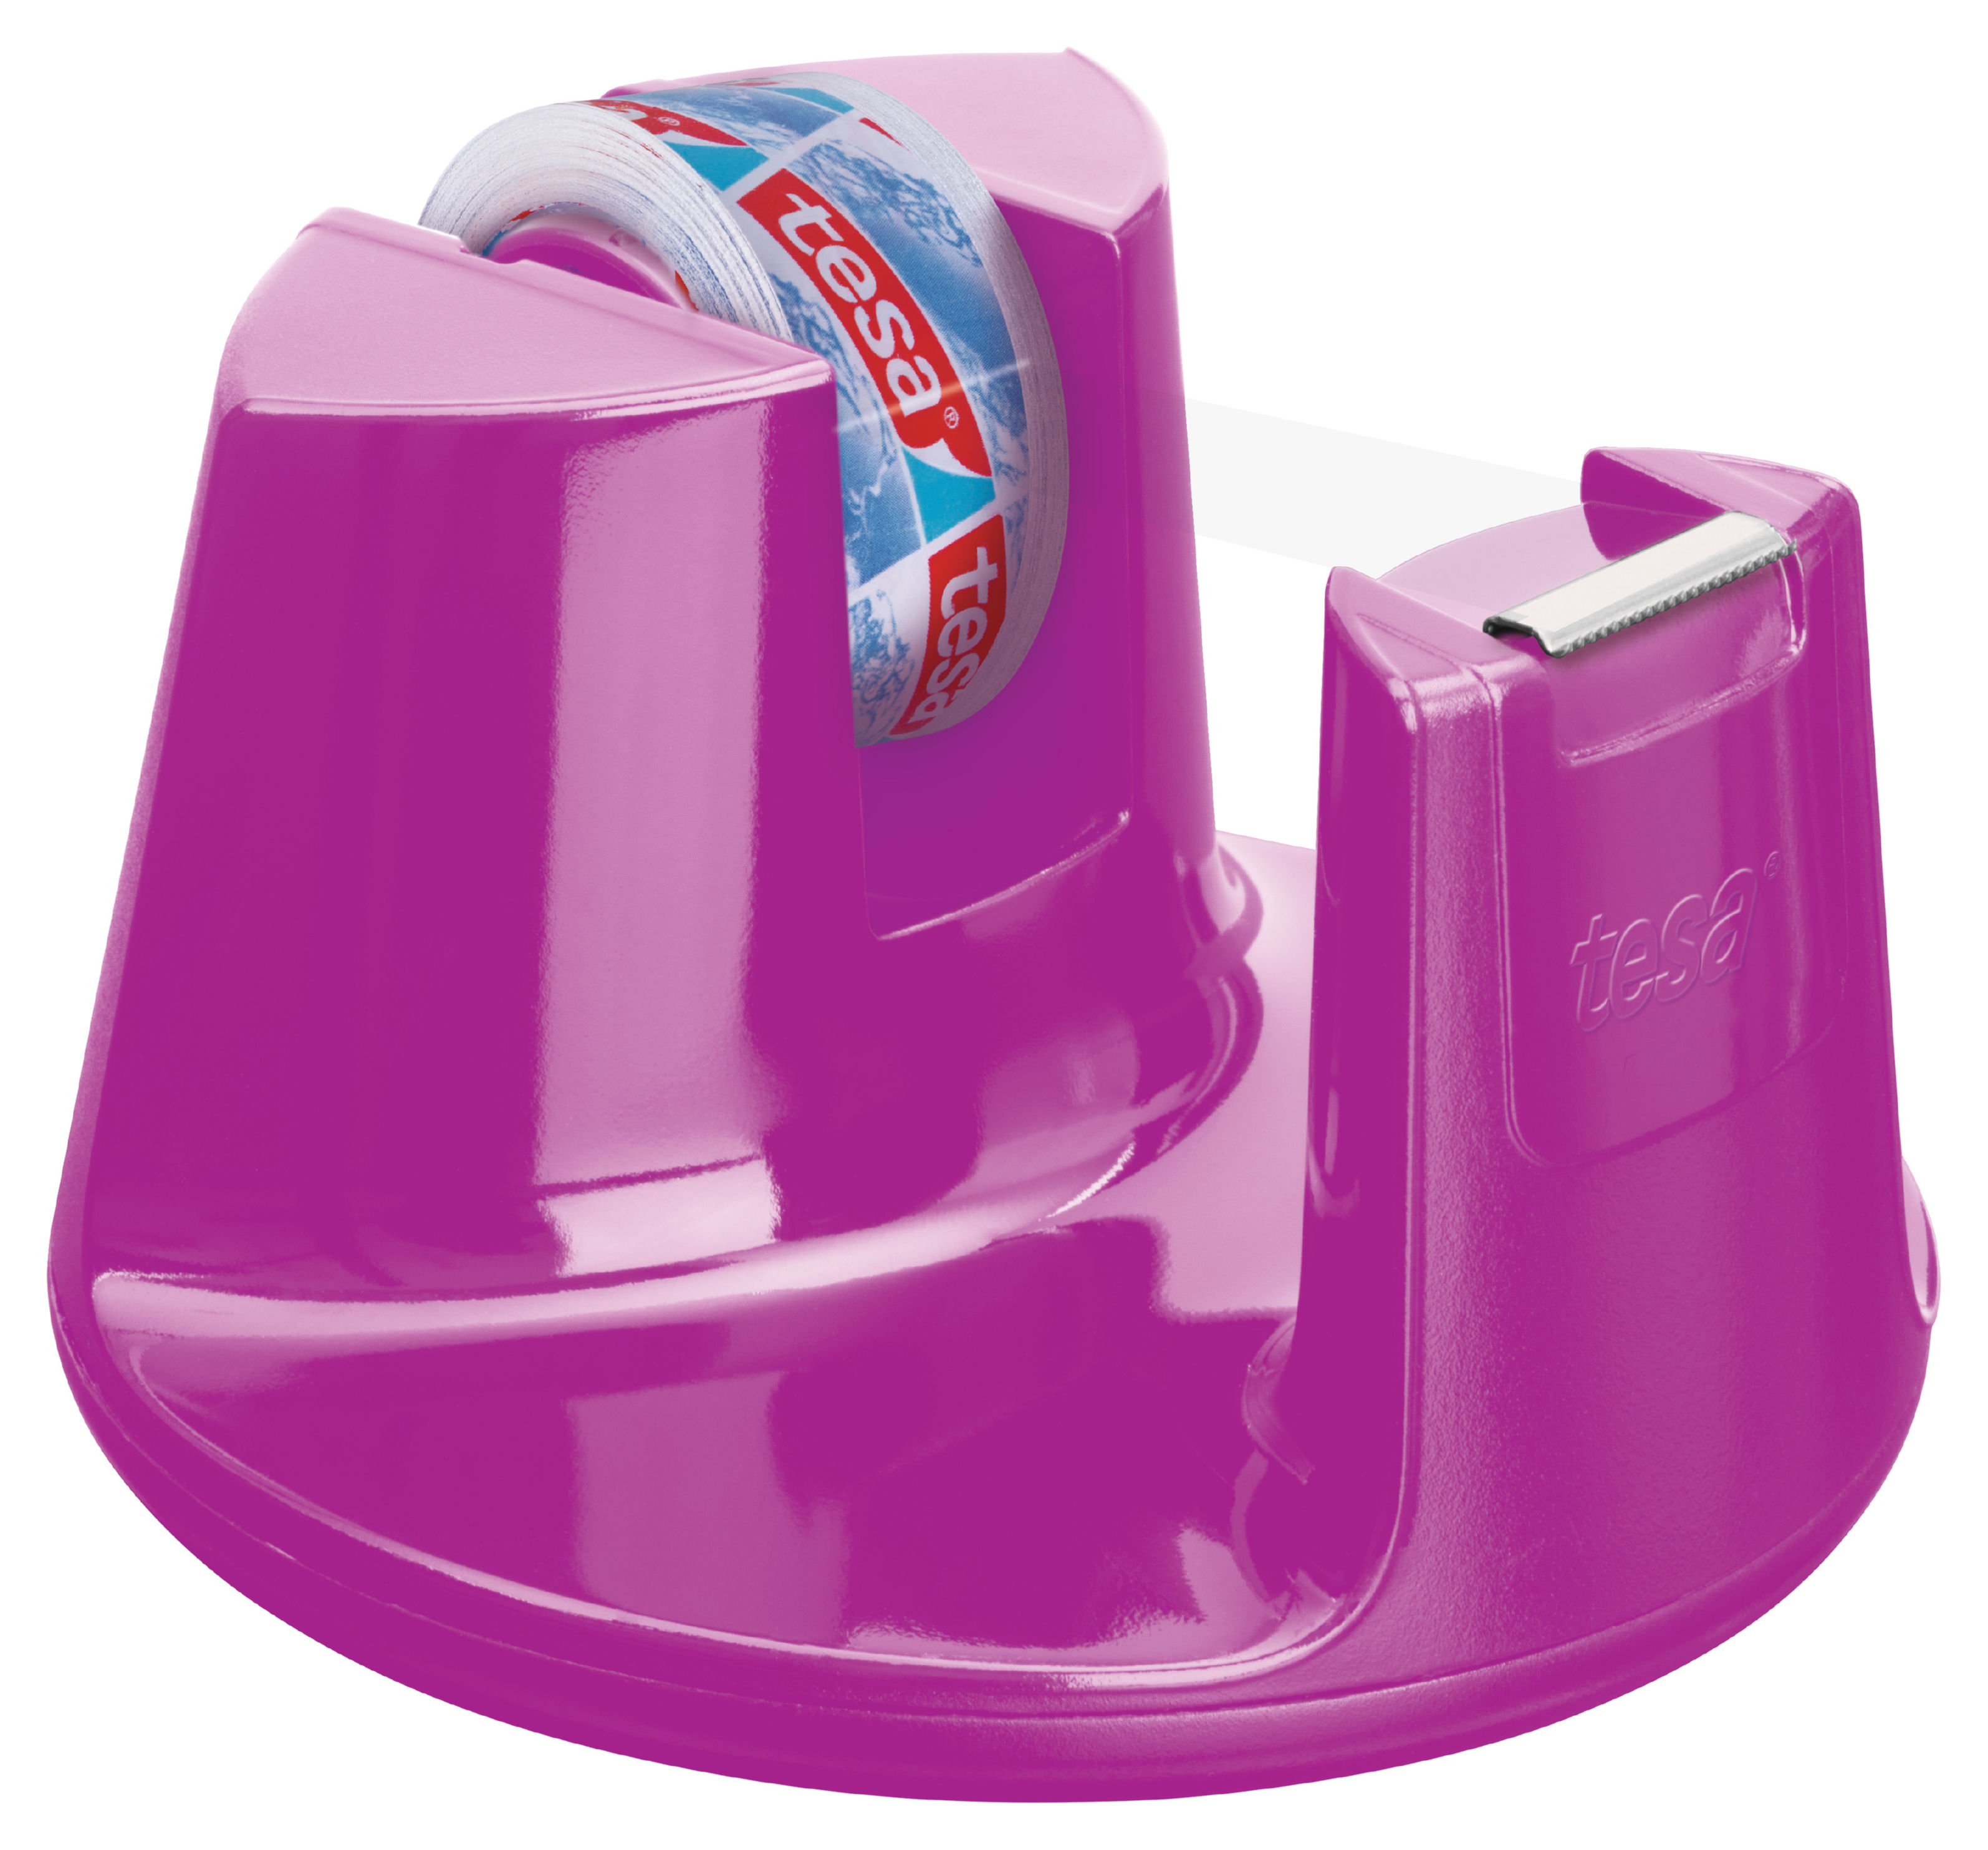 Tape Dispensers tesa Easy Cut Compact Dispenser Pink Including 1 roll 15mmx10m